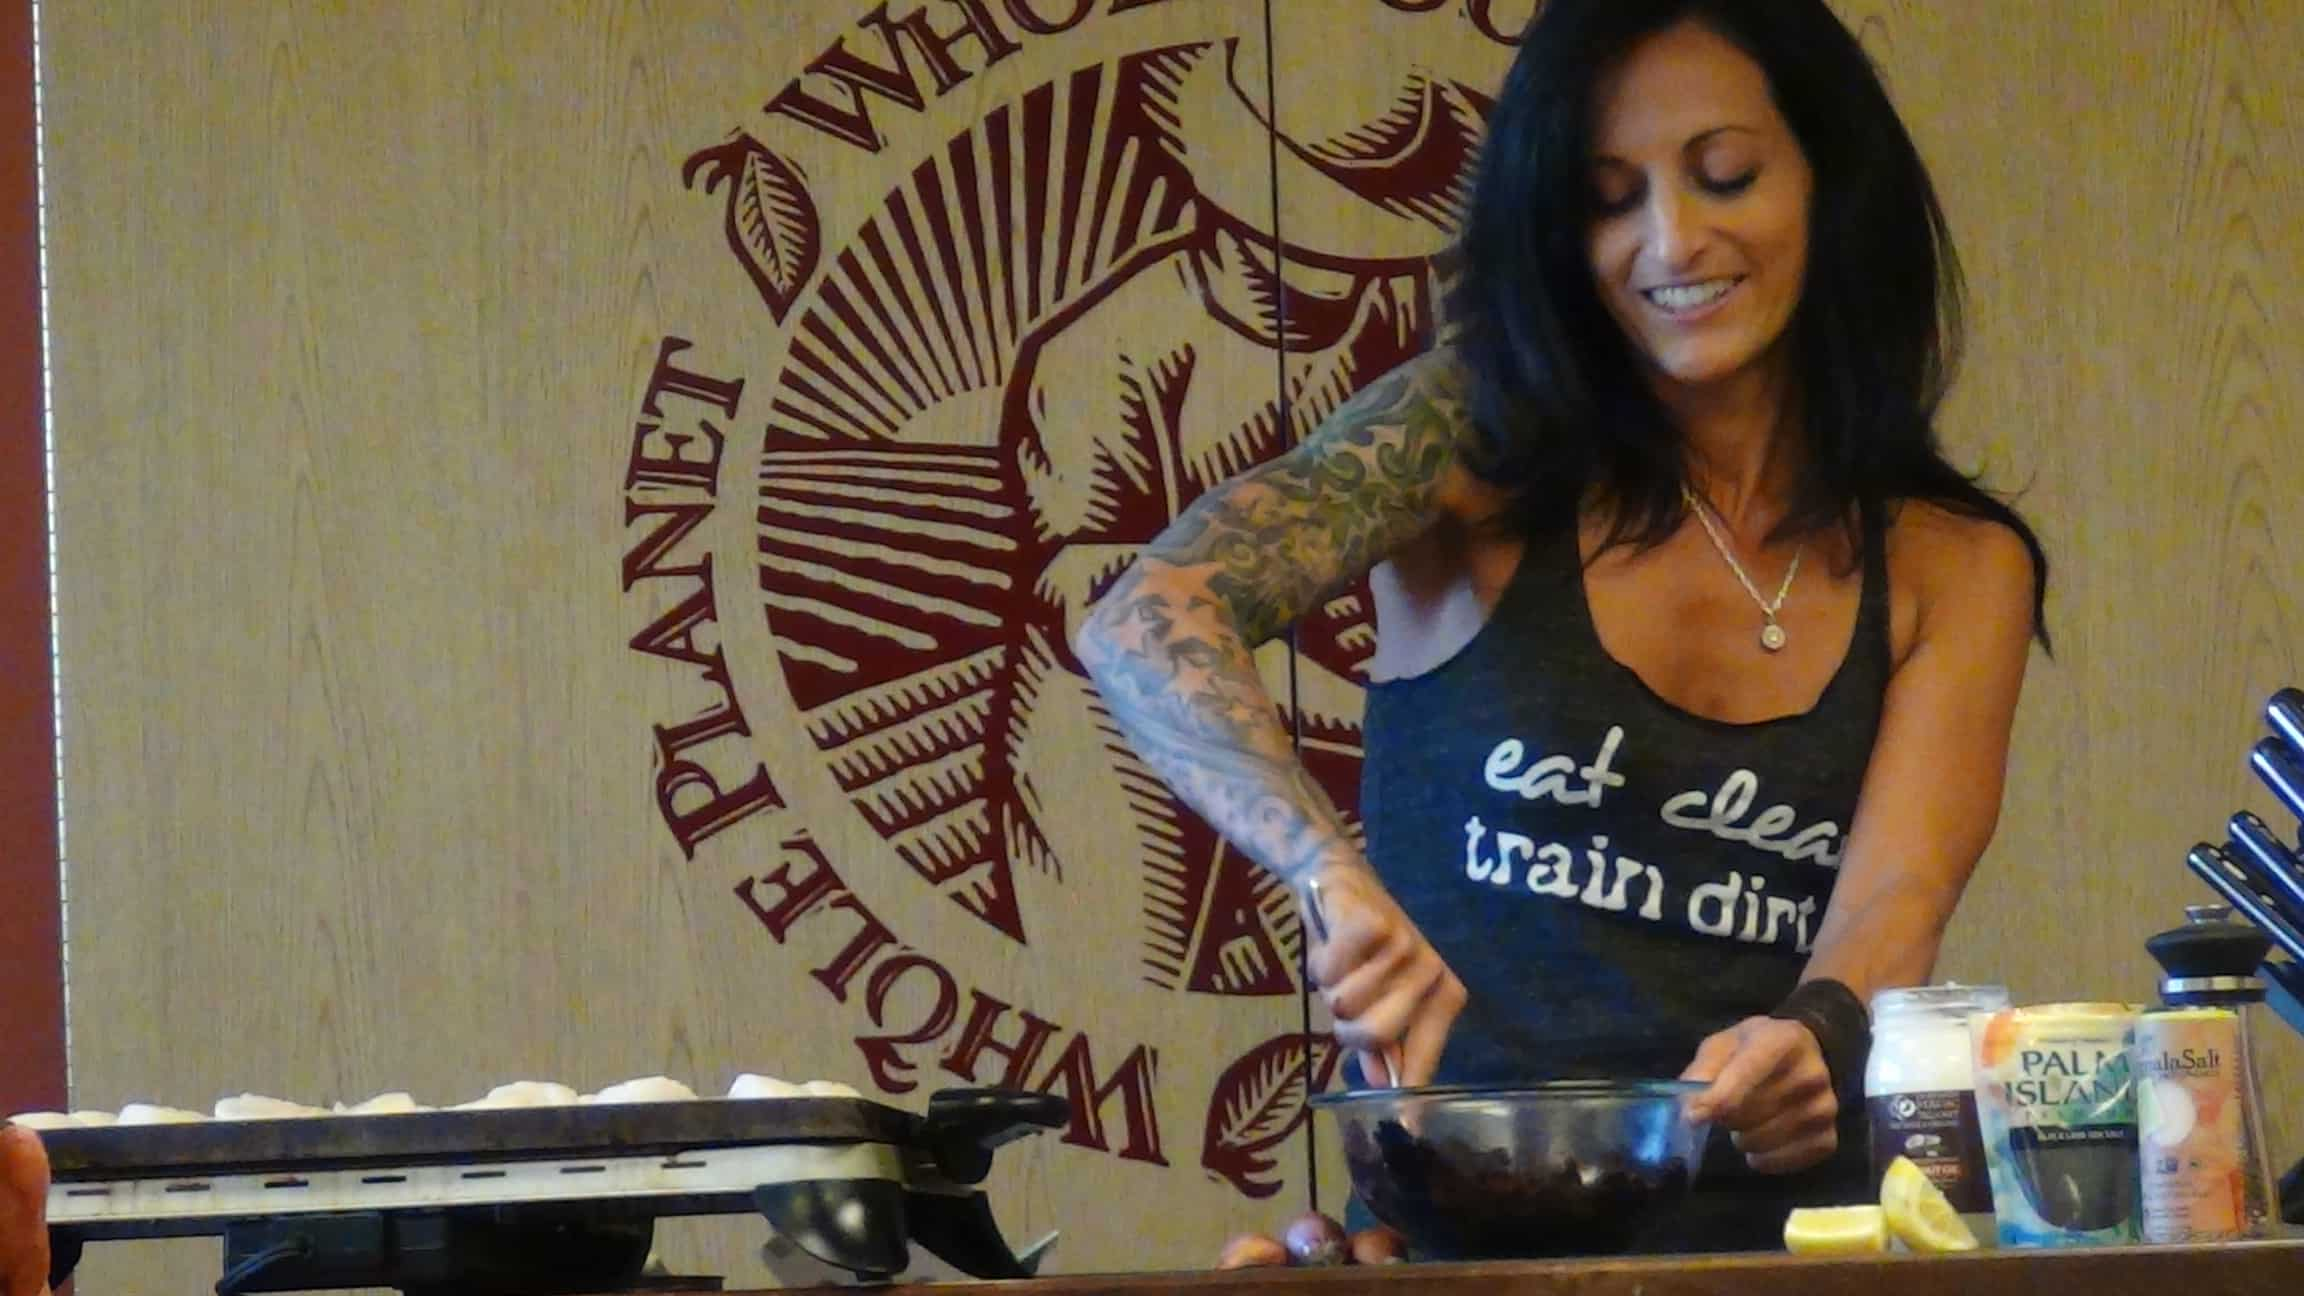 Whole Foods Alternative Diets Cooking Class 6/27